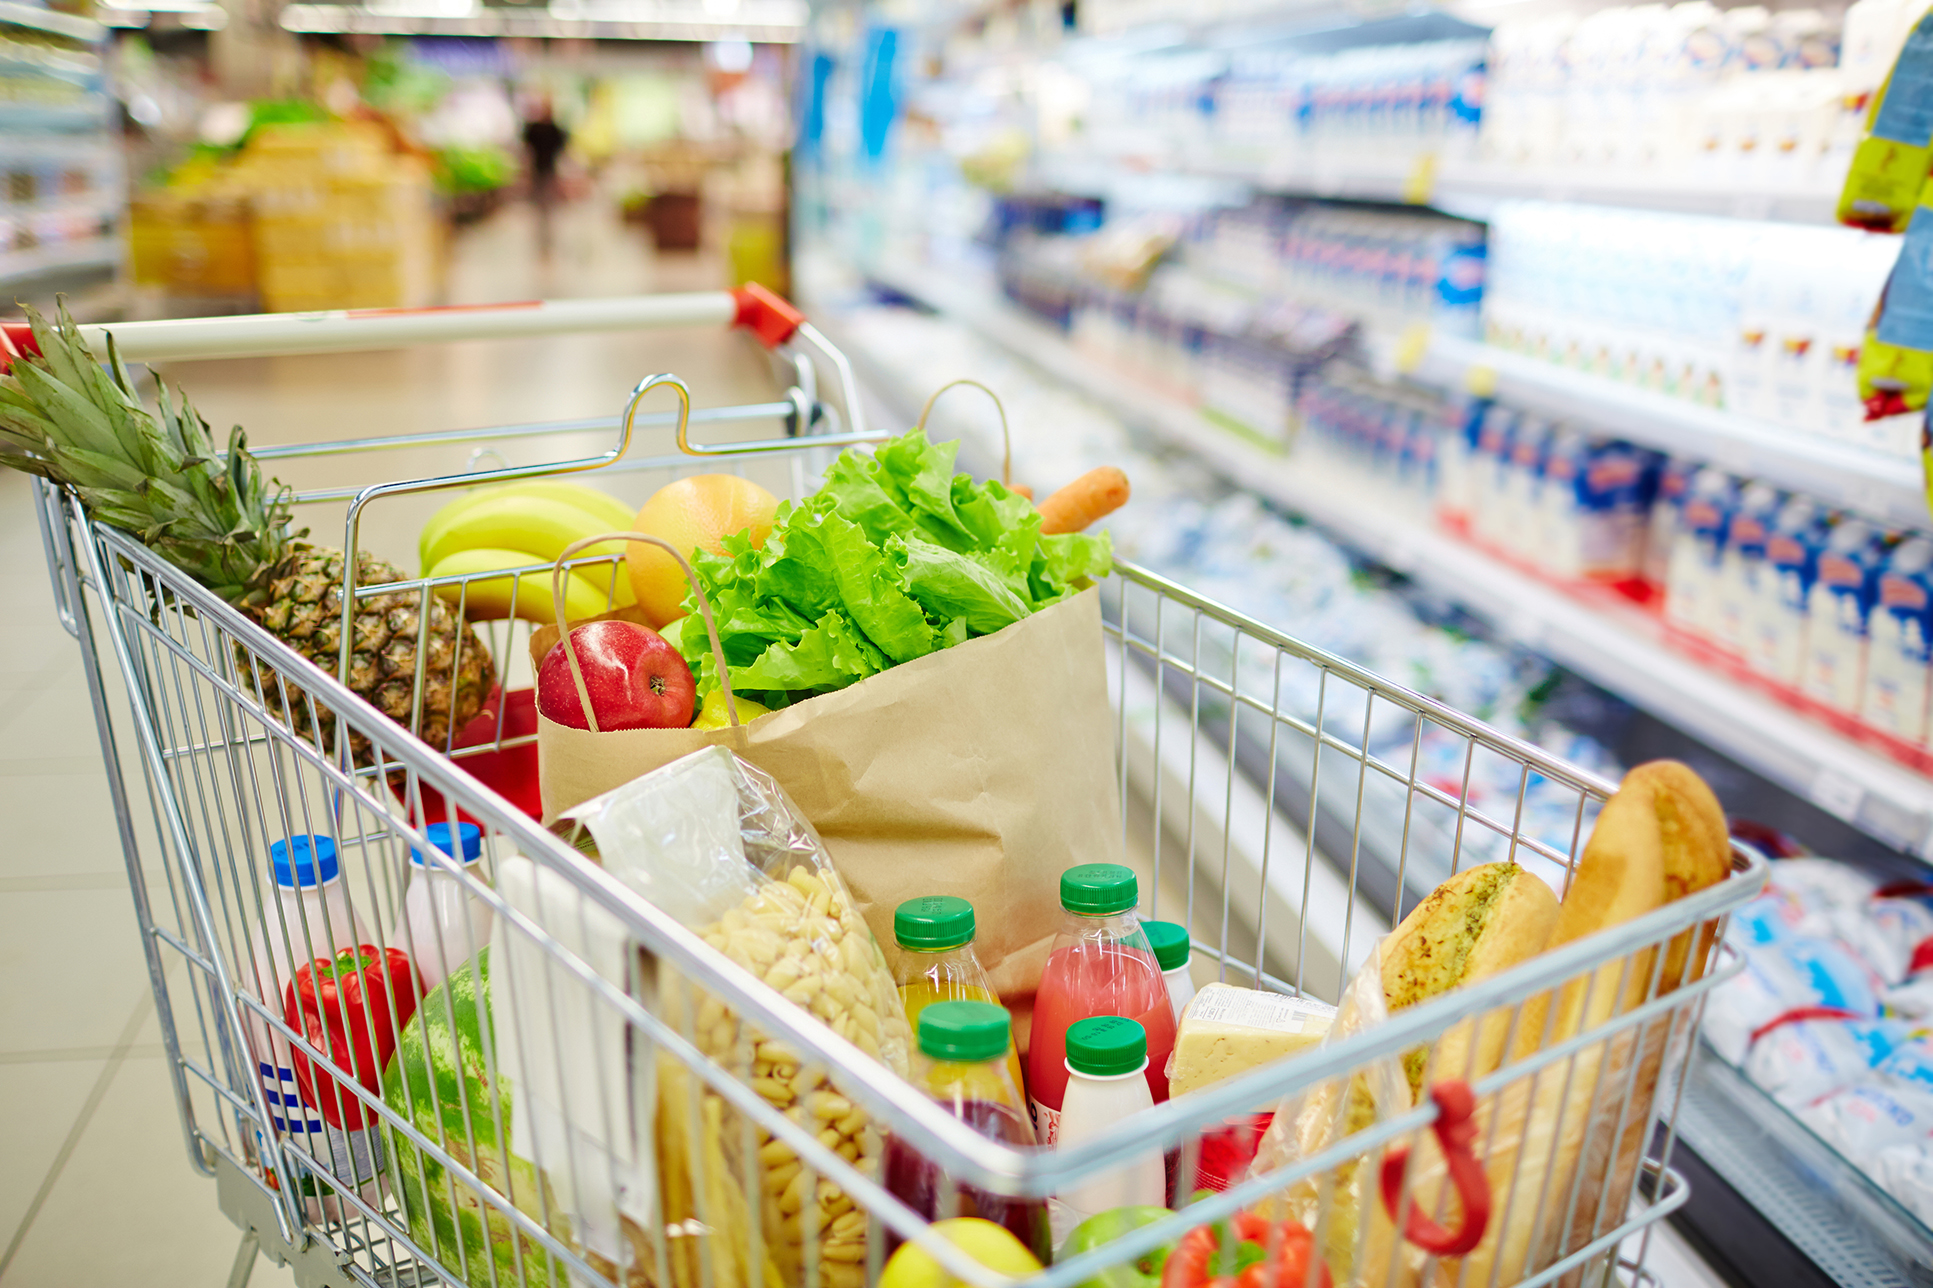 Different foods in a shopping cart